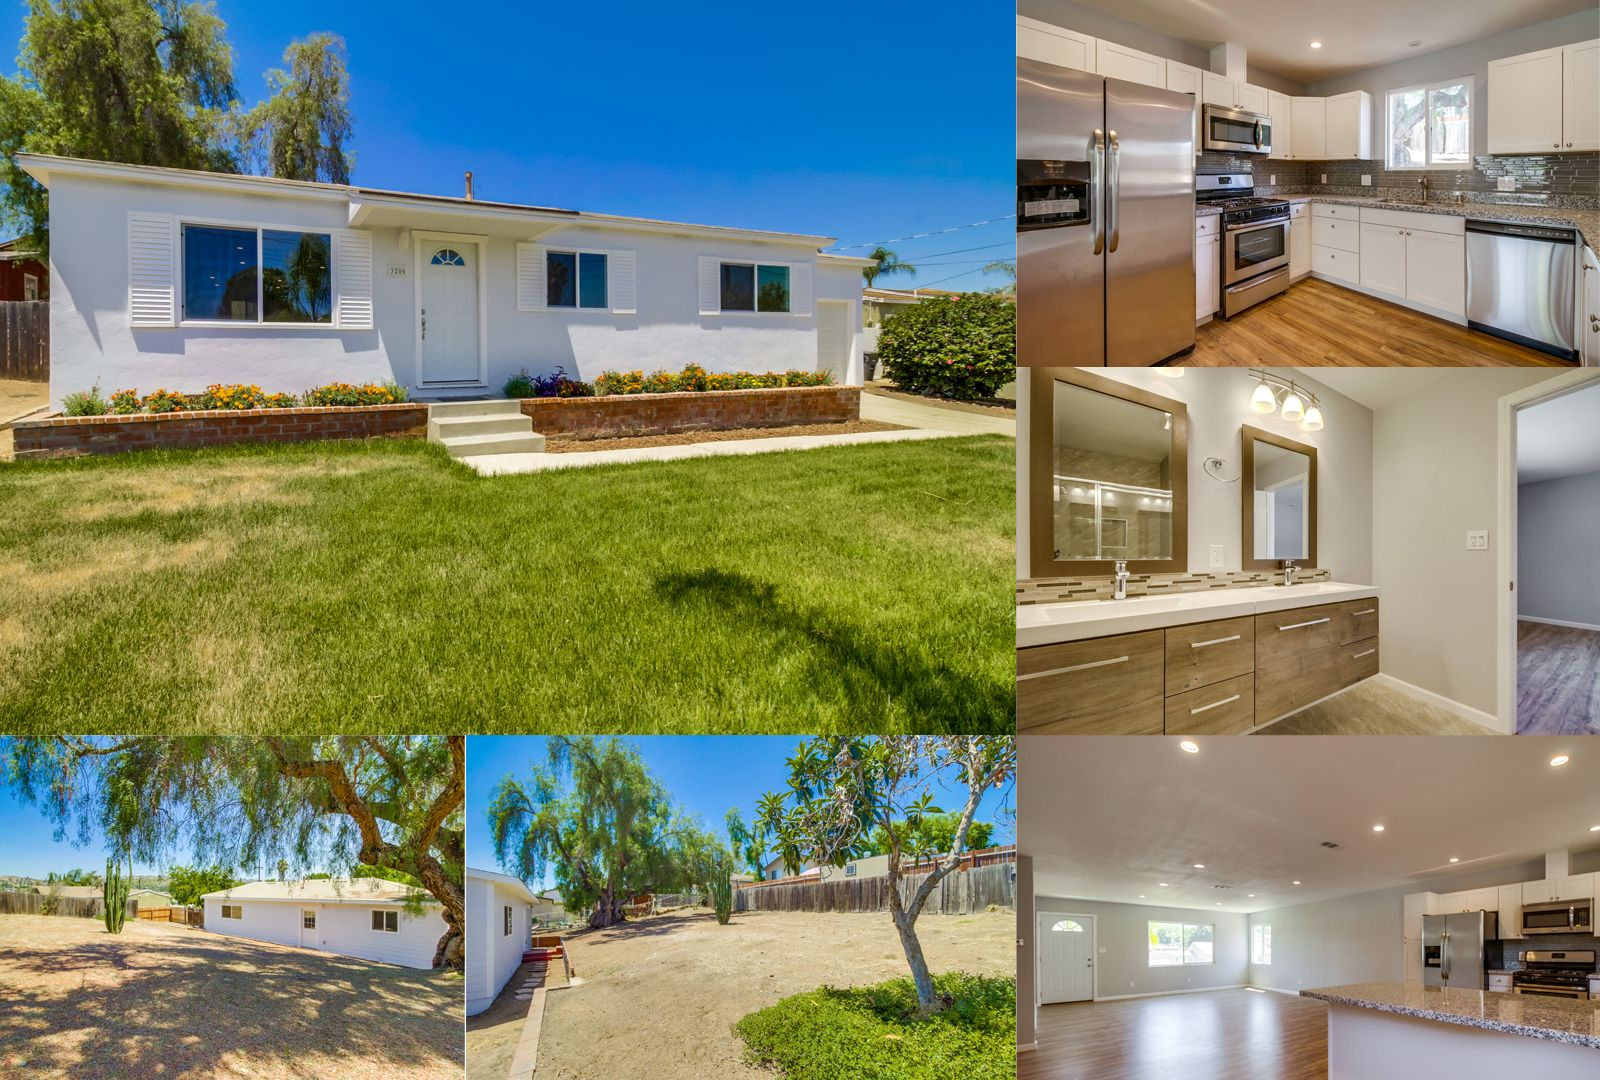 PRICE REDUCED! Seller will entertain offers between $449,000 ...